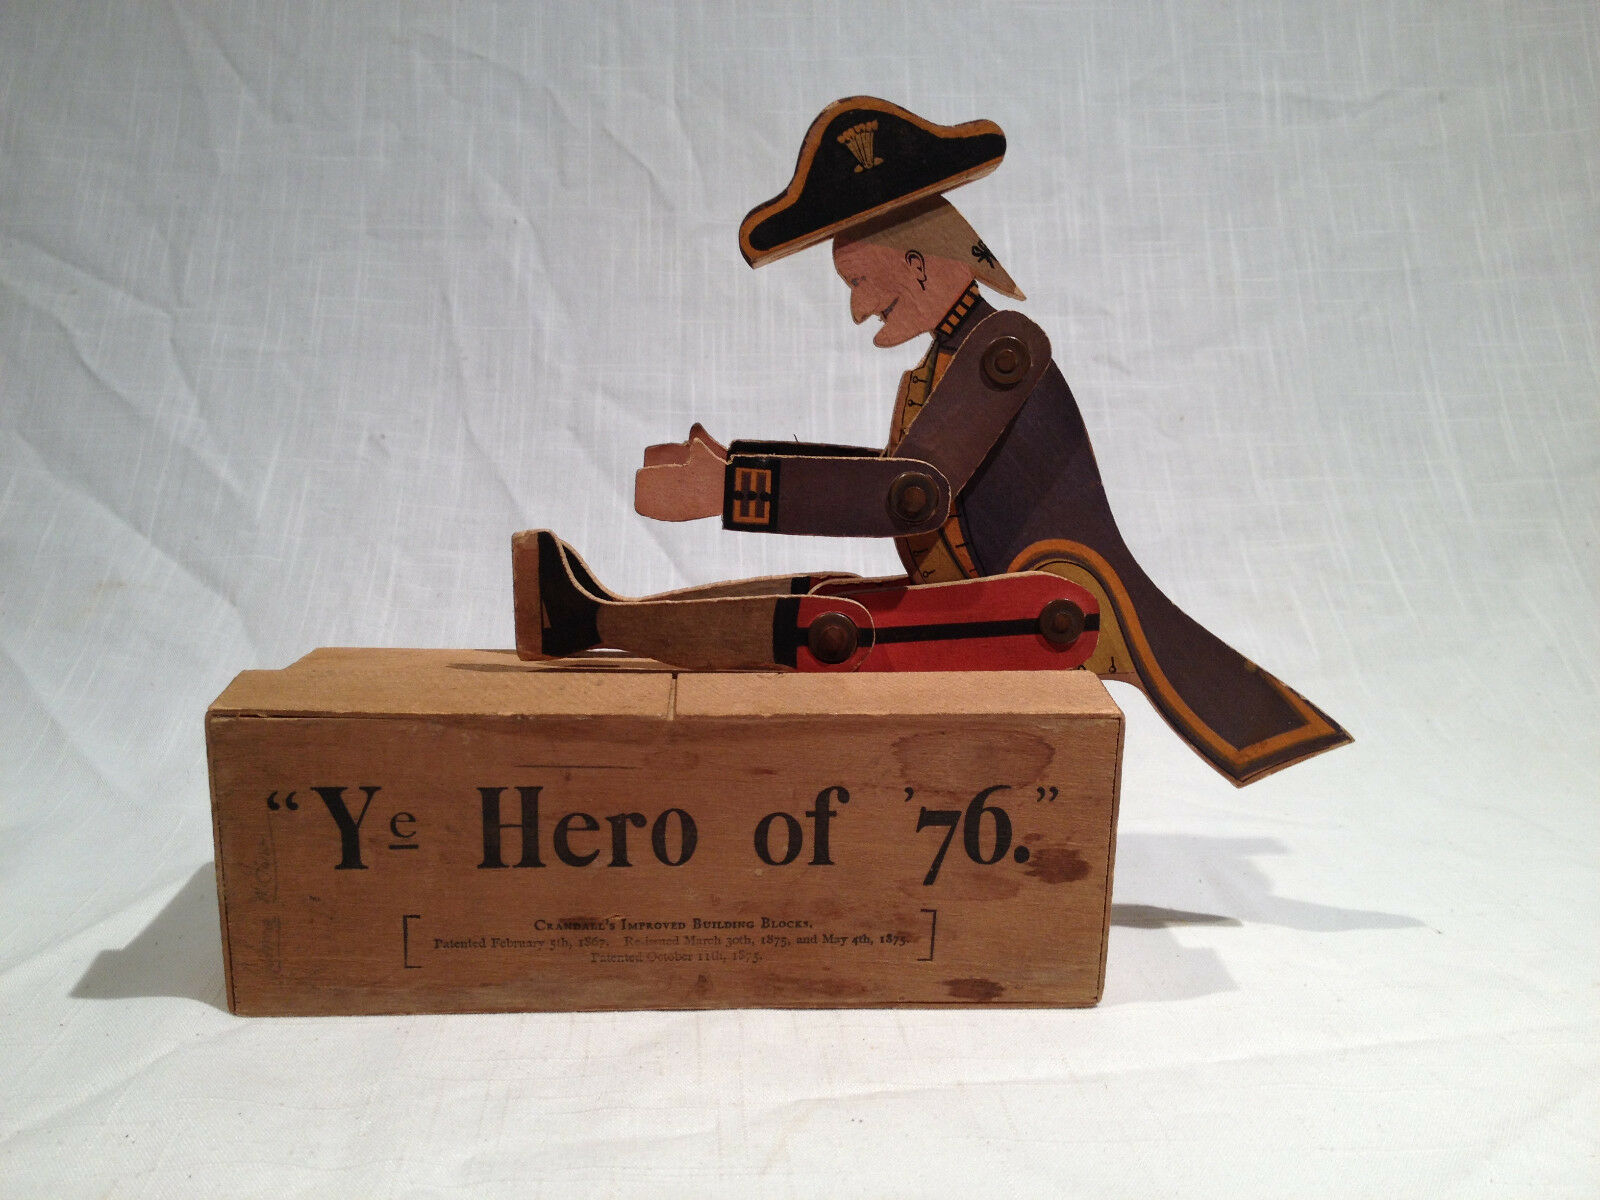 CRANDALL'S TOY YE HERO OF '76 JOINTED WOOD WOOD WOOD COLONIAL SOLDIER WITH ORIGINAL BOX 6c1995